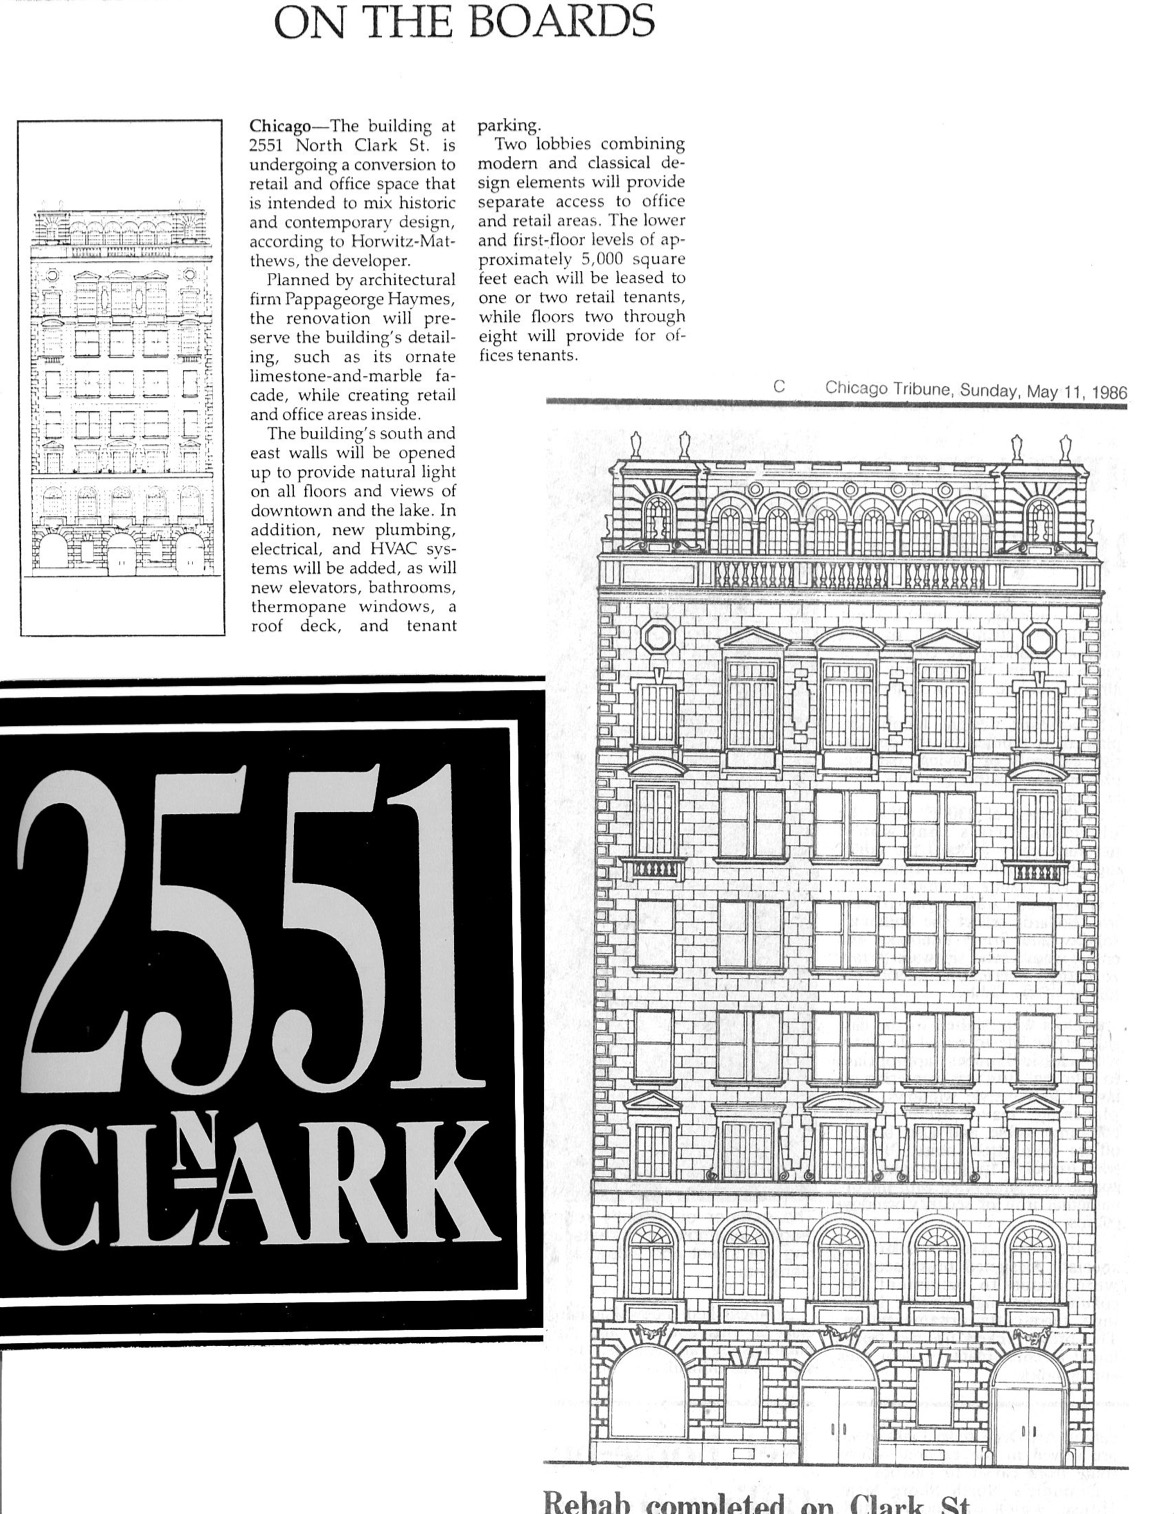 Crain's Chicago Business 1986